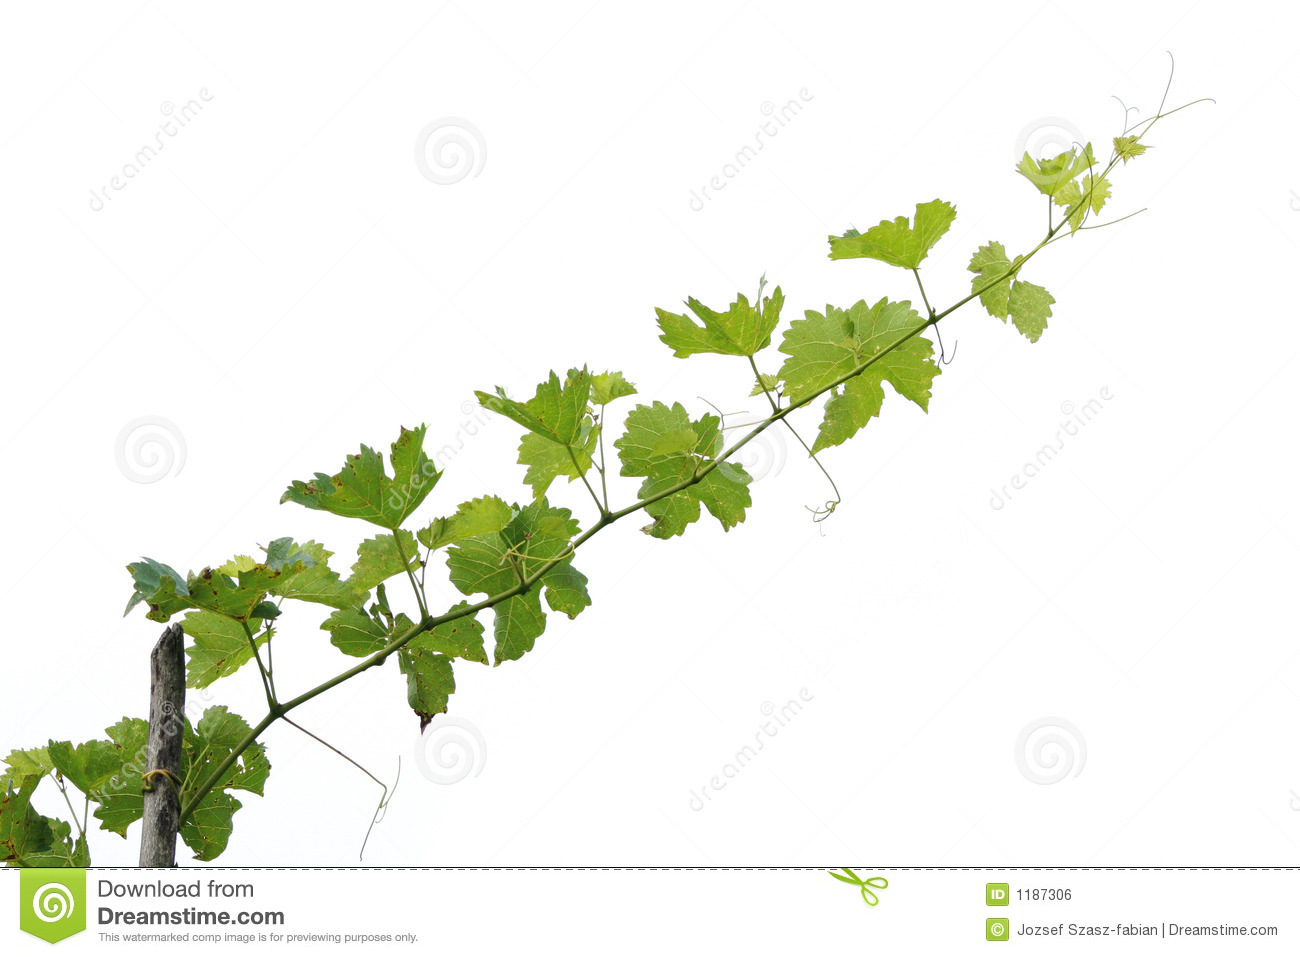 Grape Tree Branch Royalty Free Stock Image - Image: 1187306